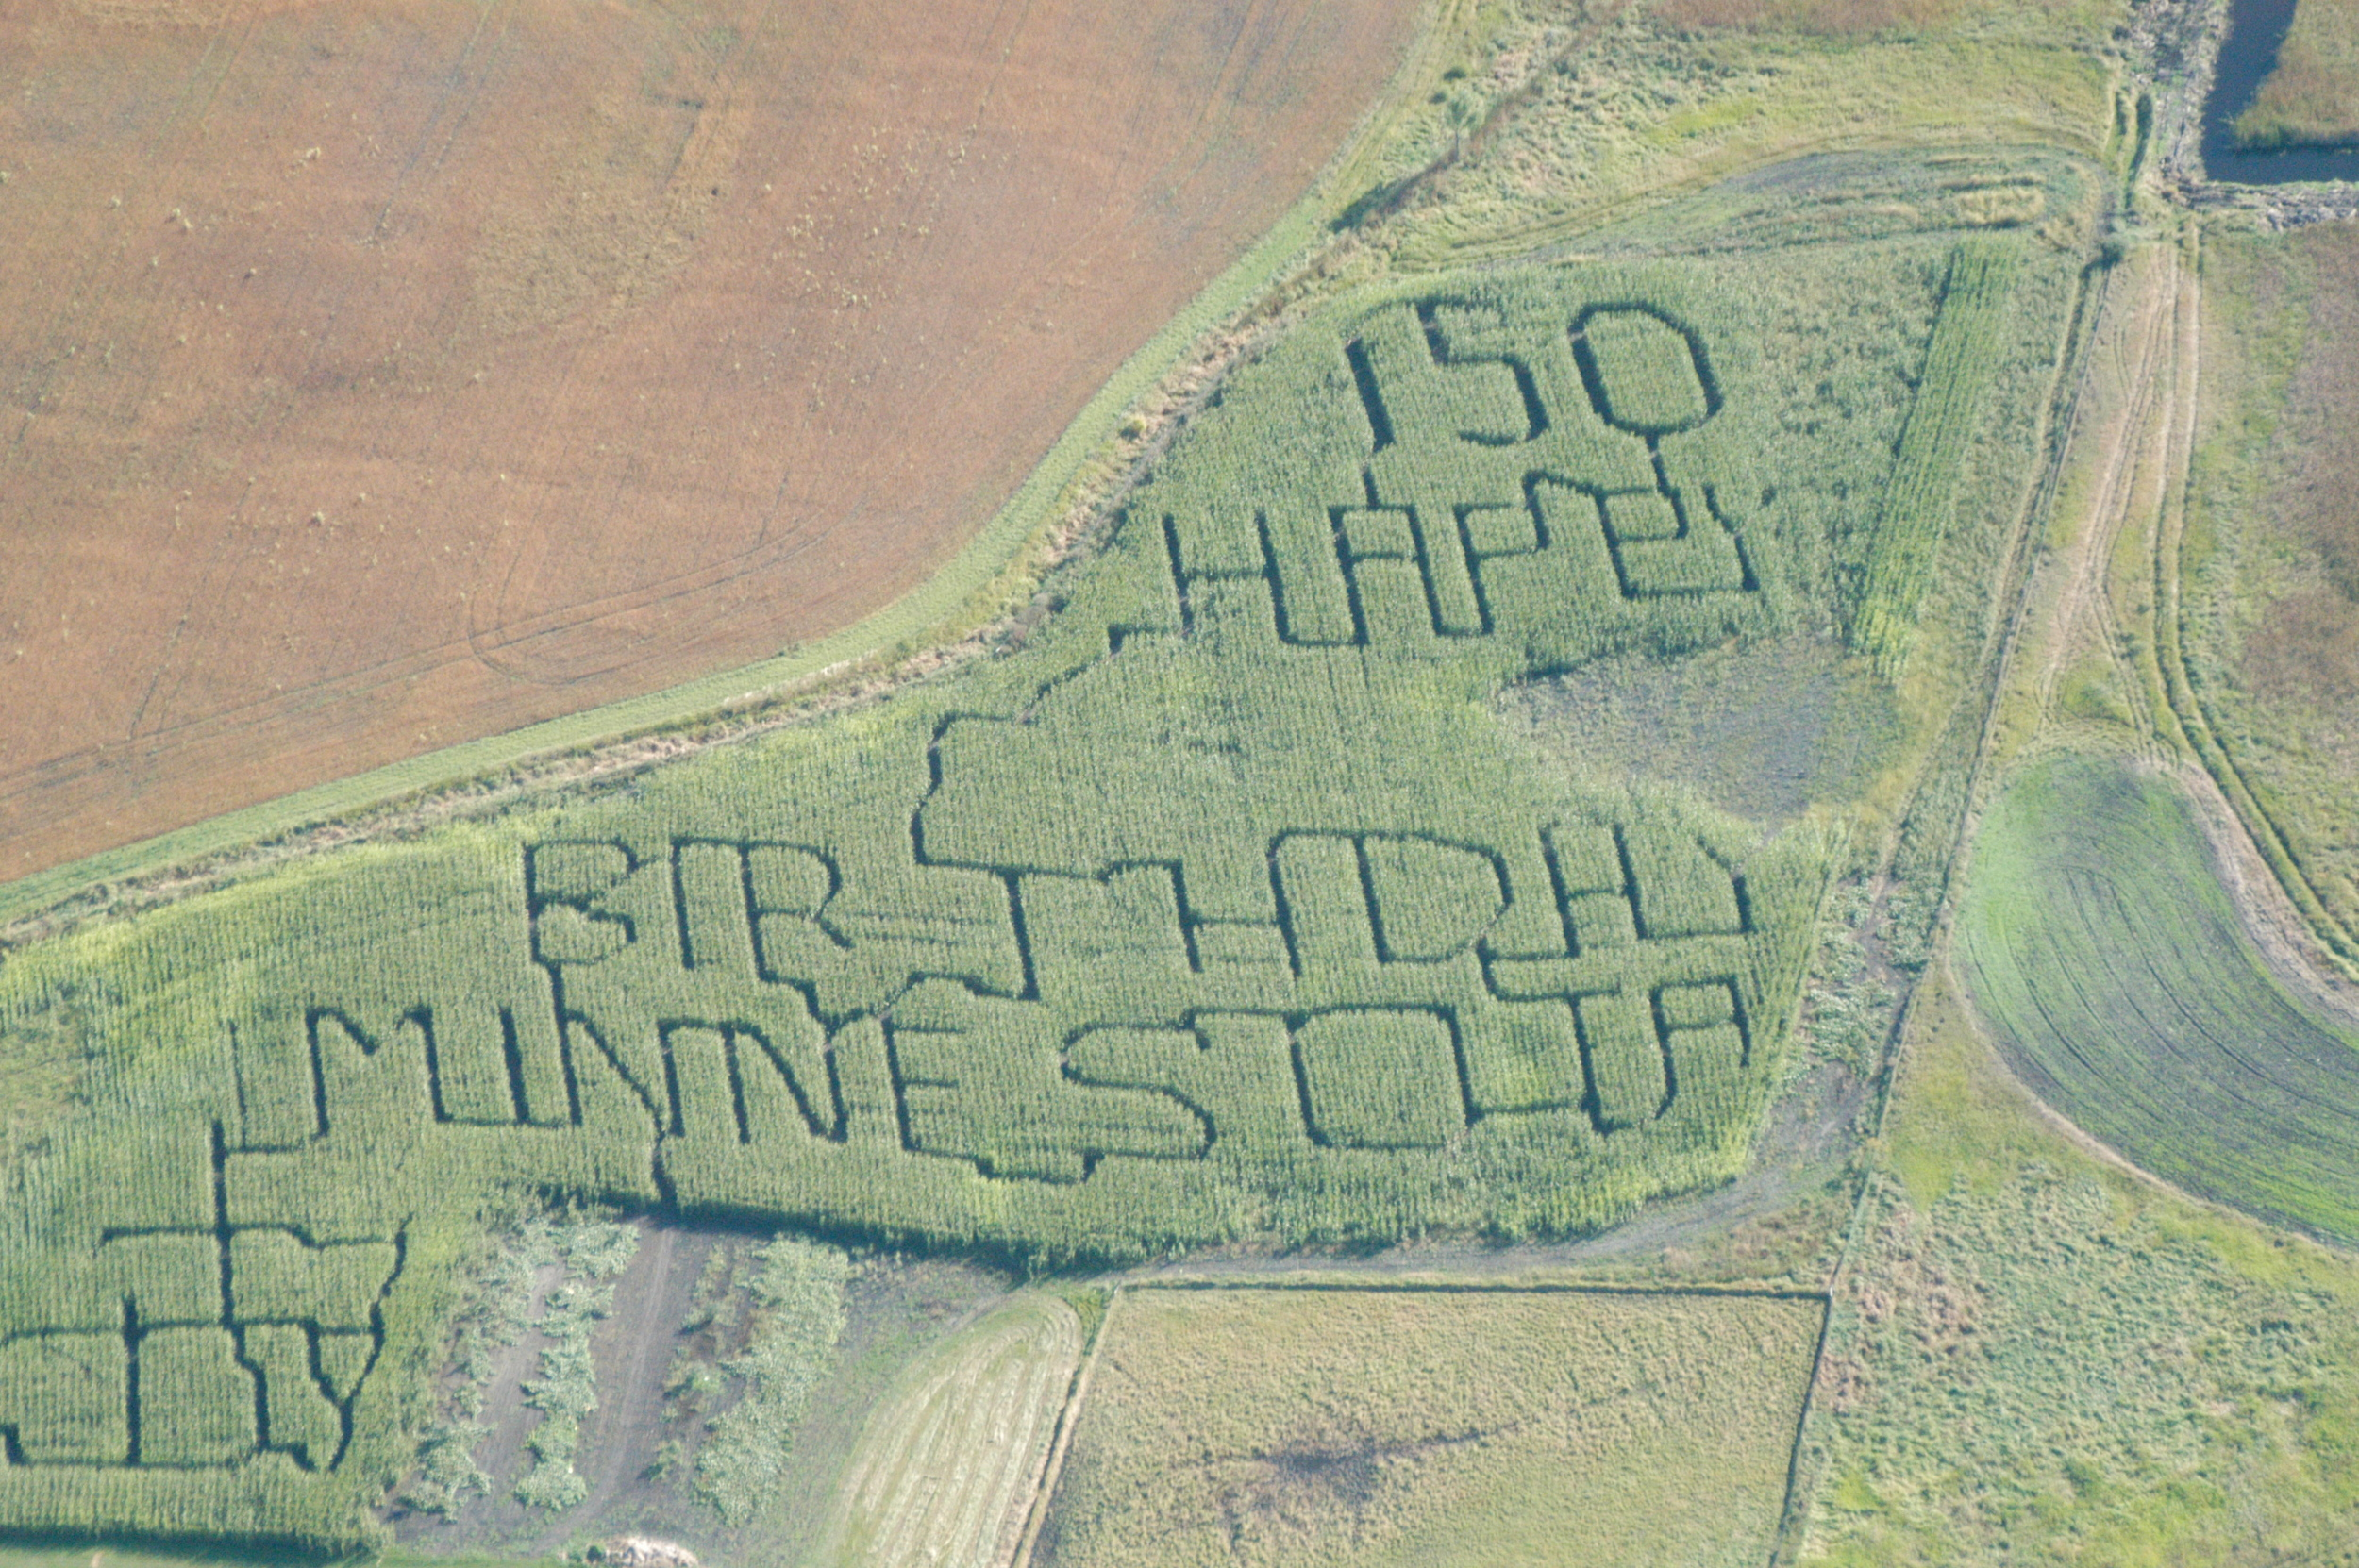 Every year there's a different maze to explore.  Can you guess what year this Corn Maze photo was taken?